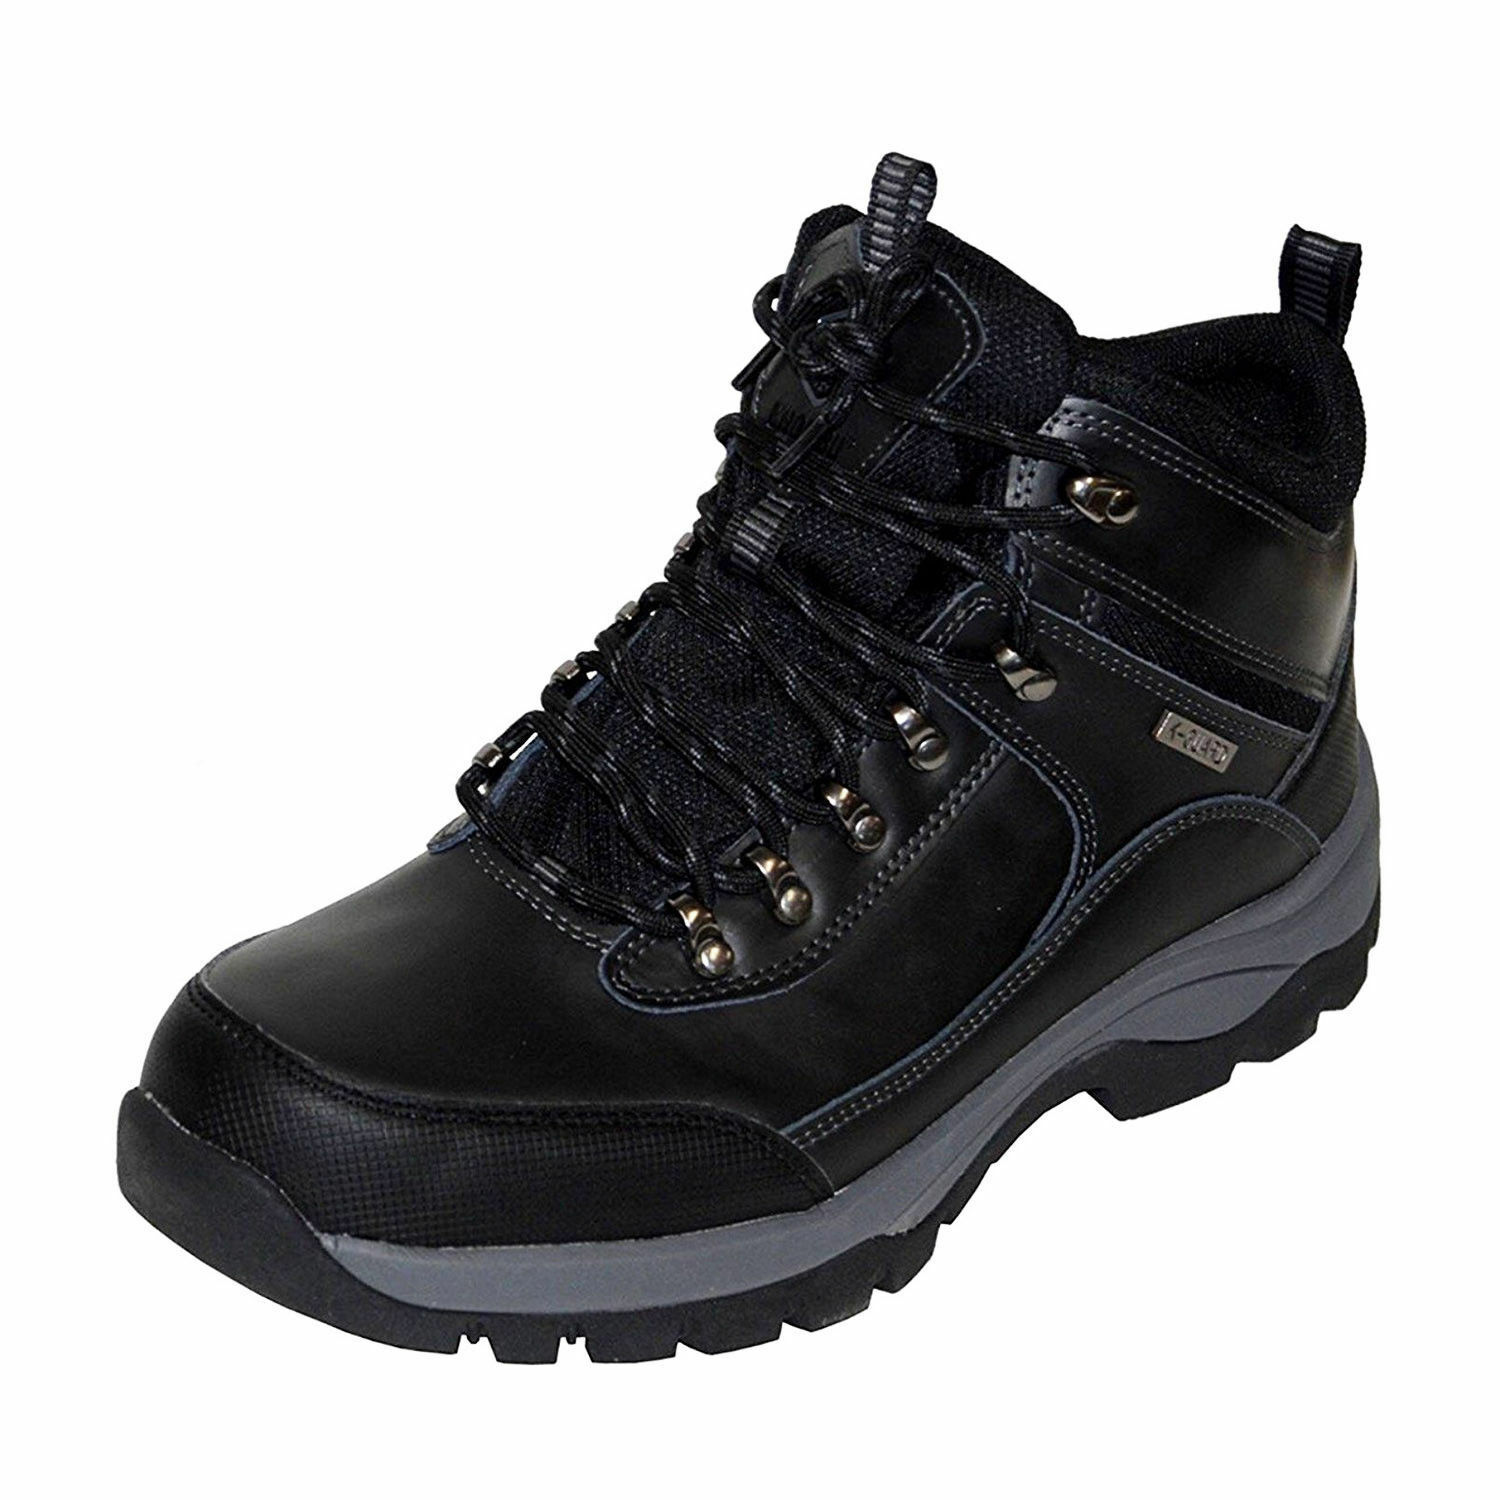 NEW - Khombu Men's Leather Hiker Boots BLACK Summit Hiking -